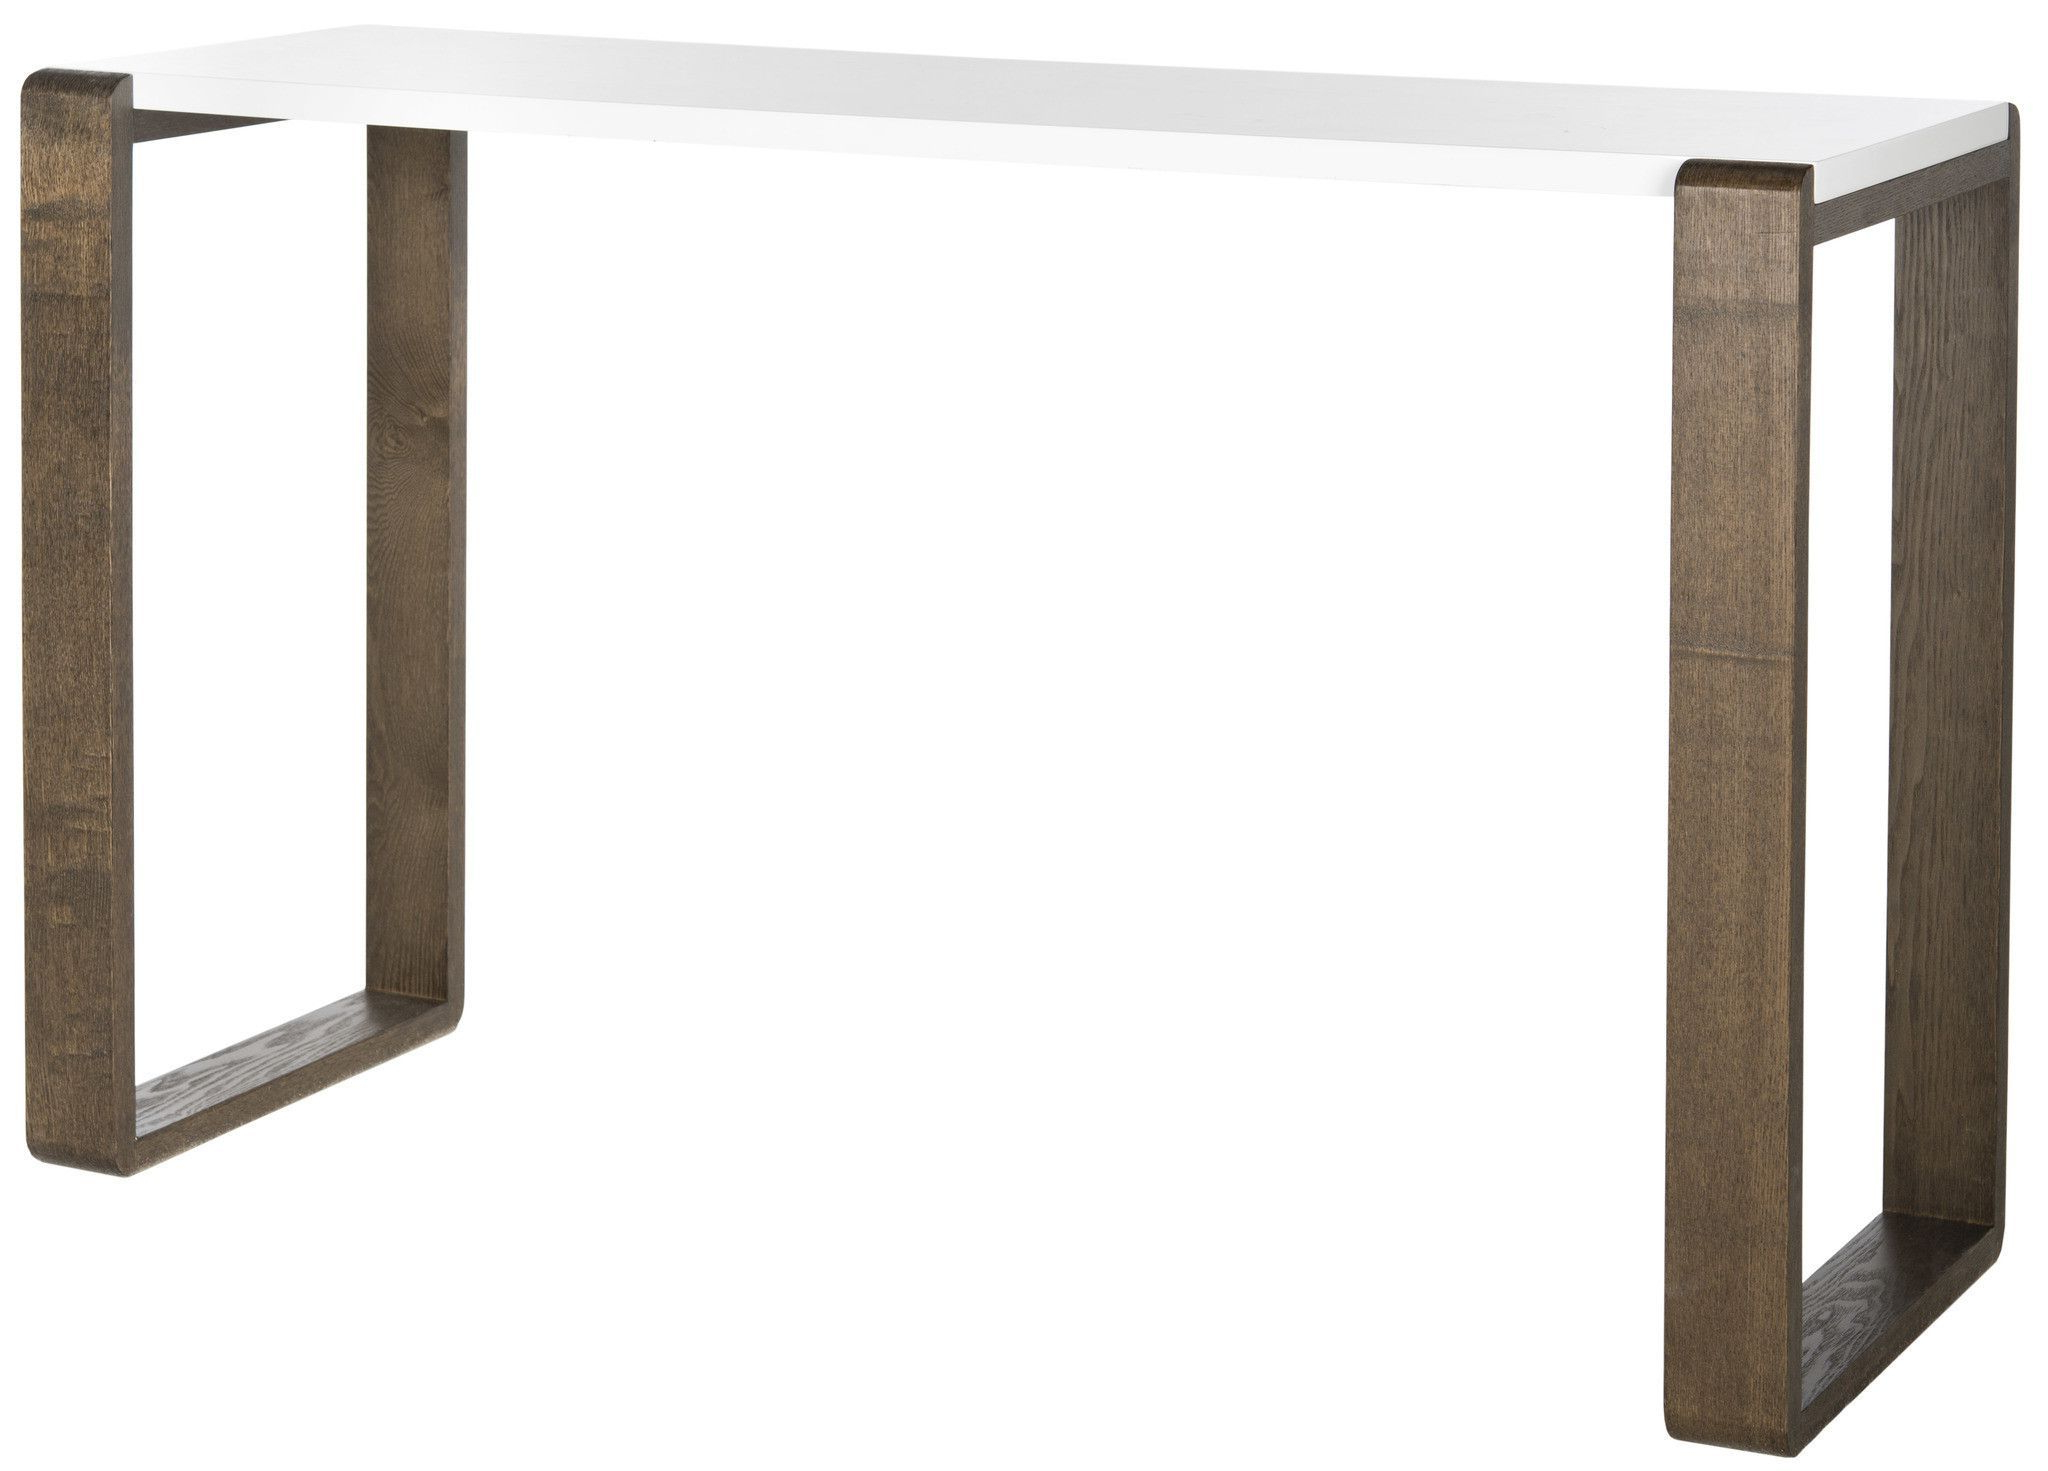 Safavieh Bartholomew Lacquer Console Table | Pinterest | Console With Regard To Ventana Display Console Tables (View 8 of 20)